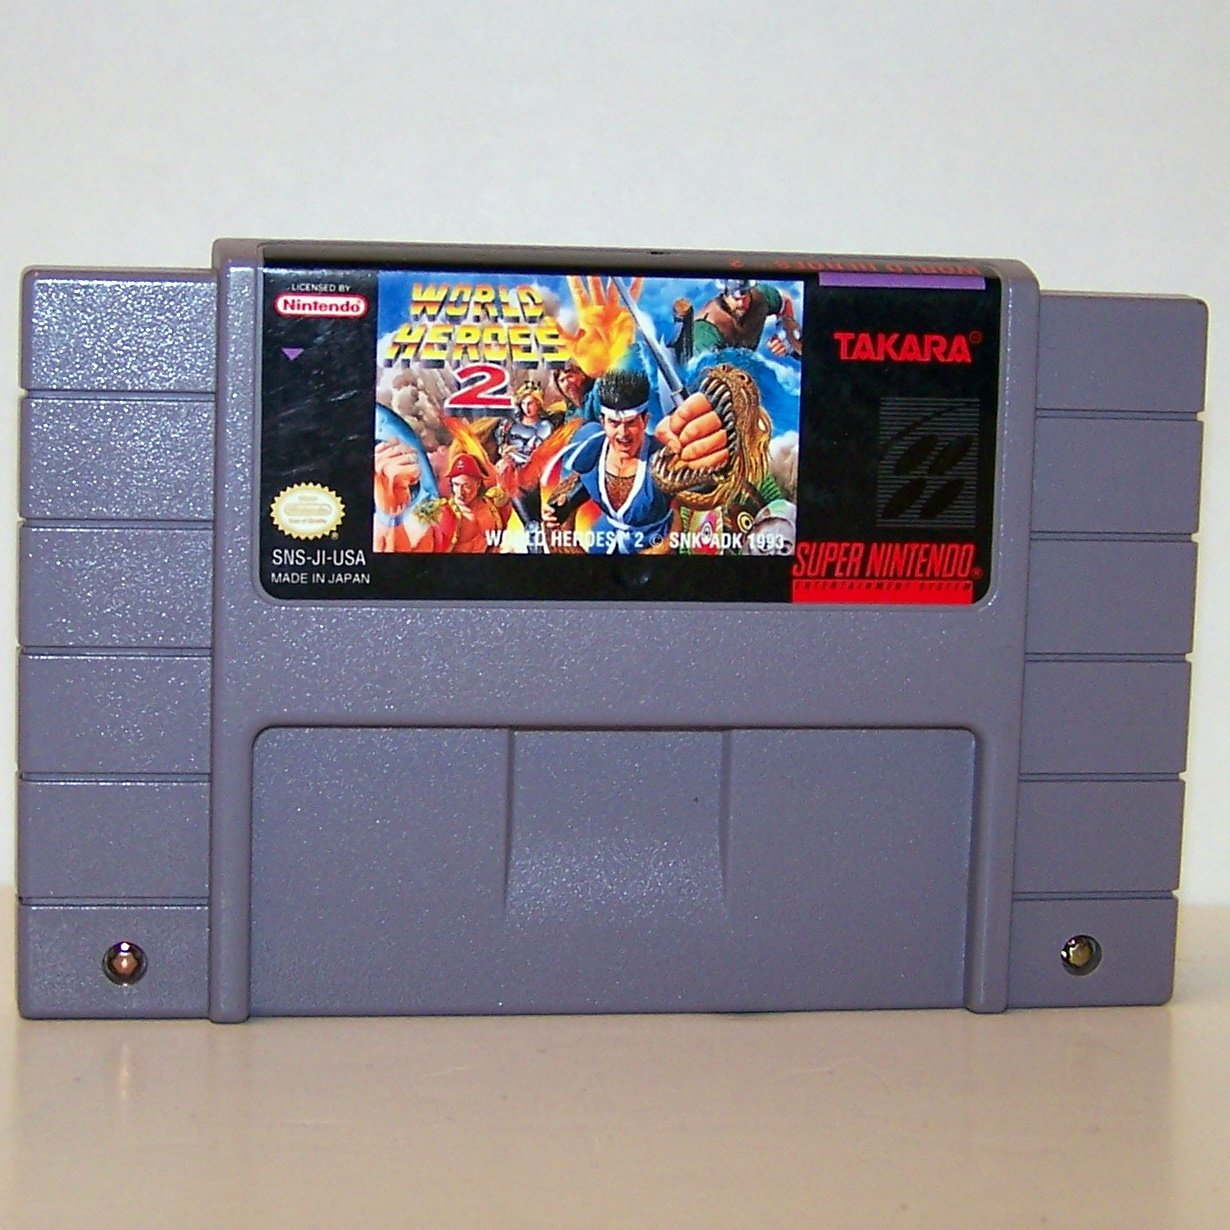 World Heroes 2 Super Nintendo Game Cartridge